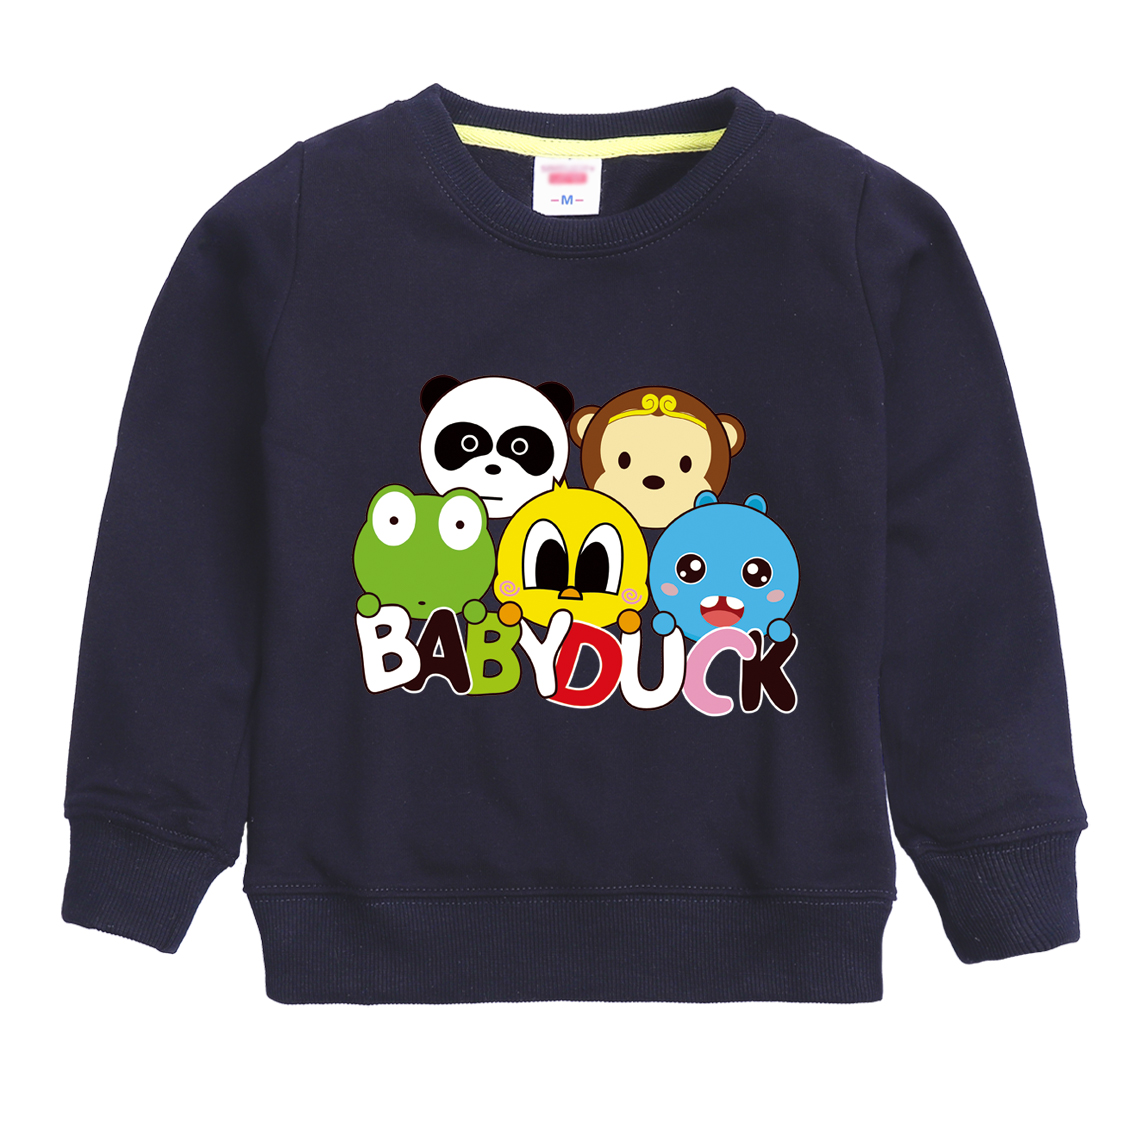 BABY DUCK pattern printed 2018 hot top winter long sleeve sweatshirt design for girl & boy keeping warm and wearing comfortable